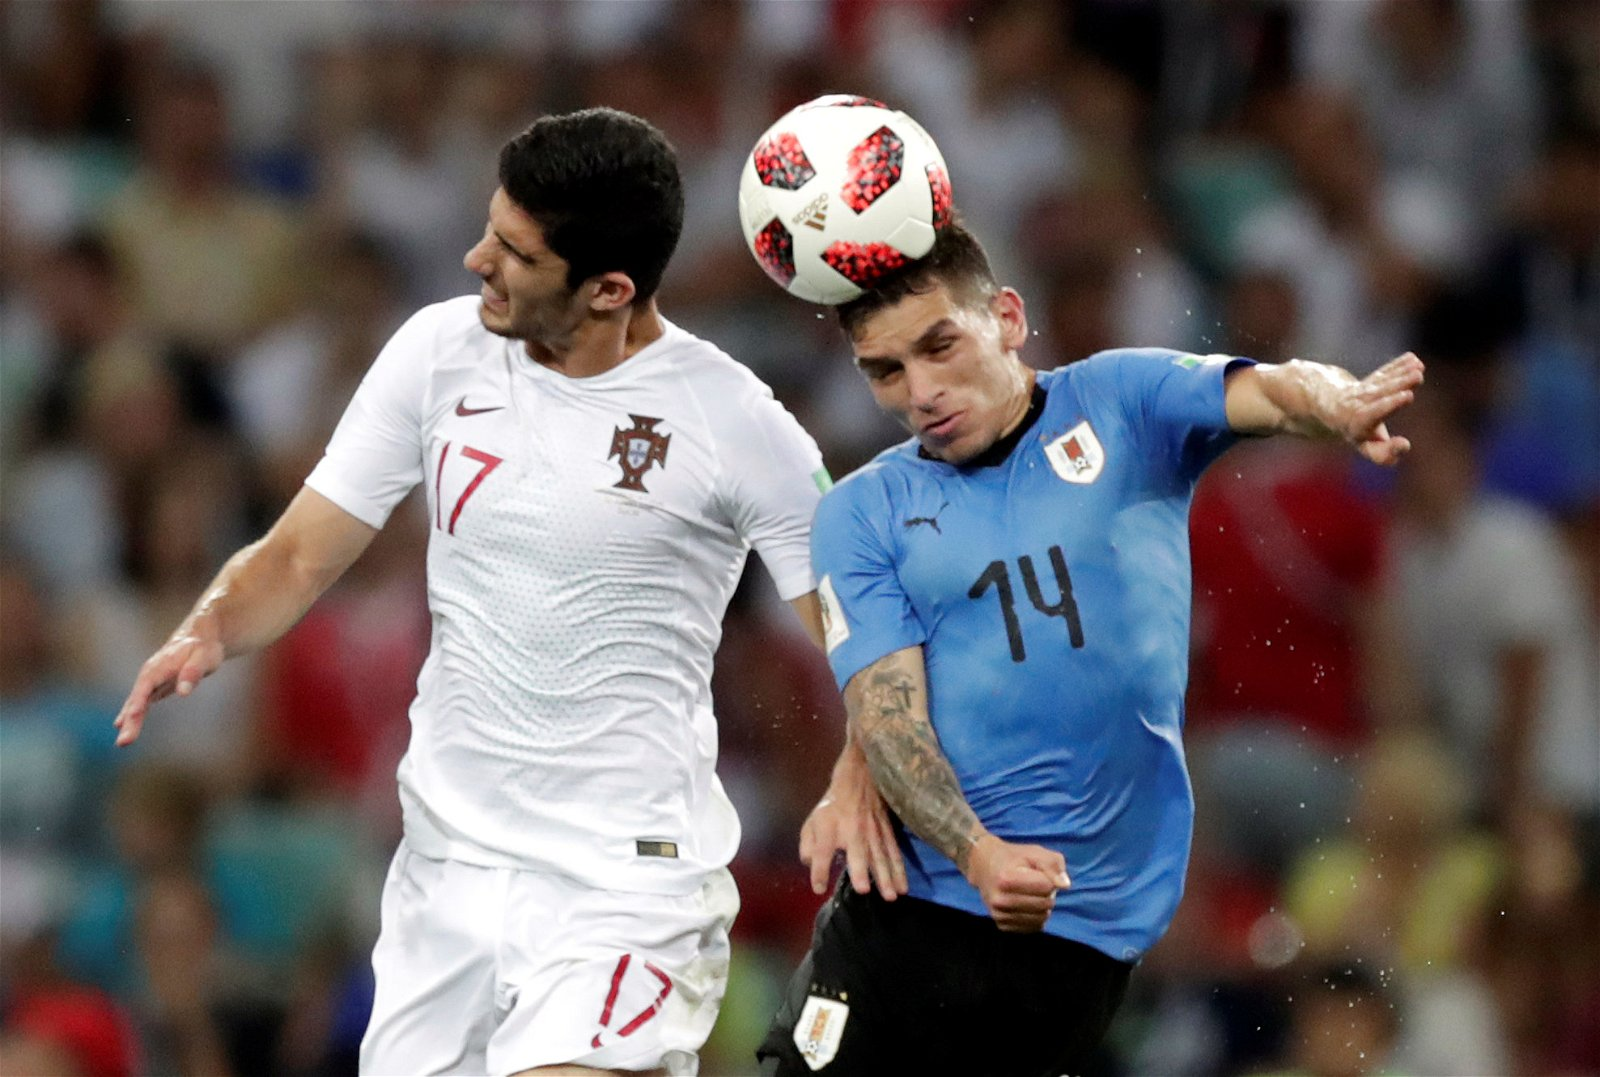 Lucas Torreira challenges Goncalo Guedes for the ball